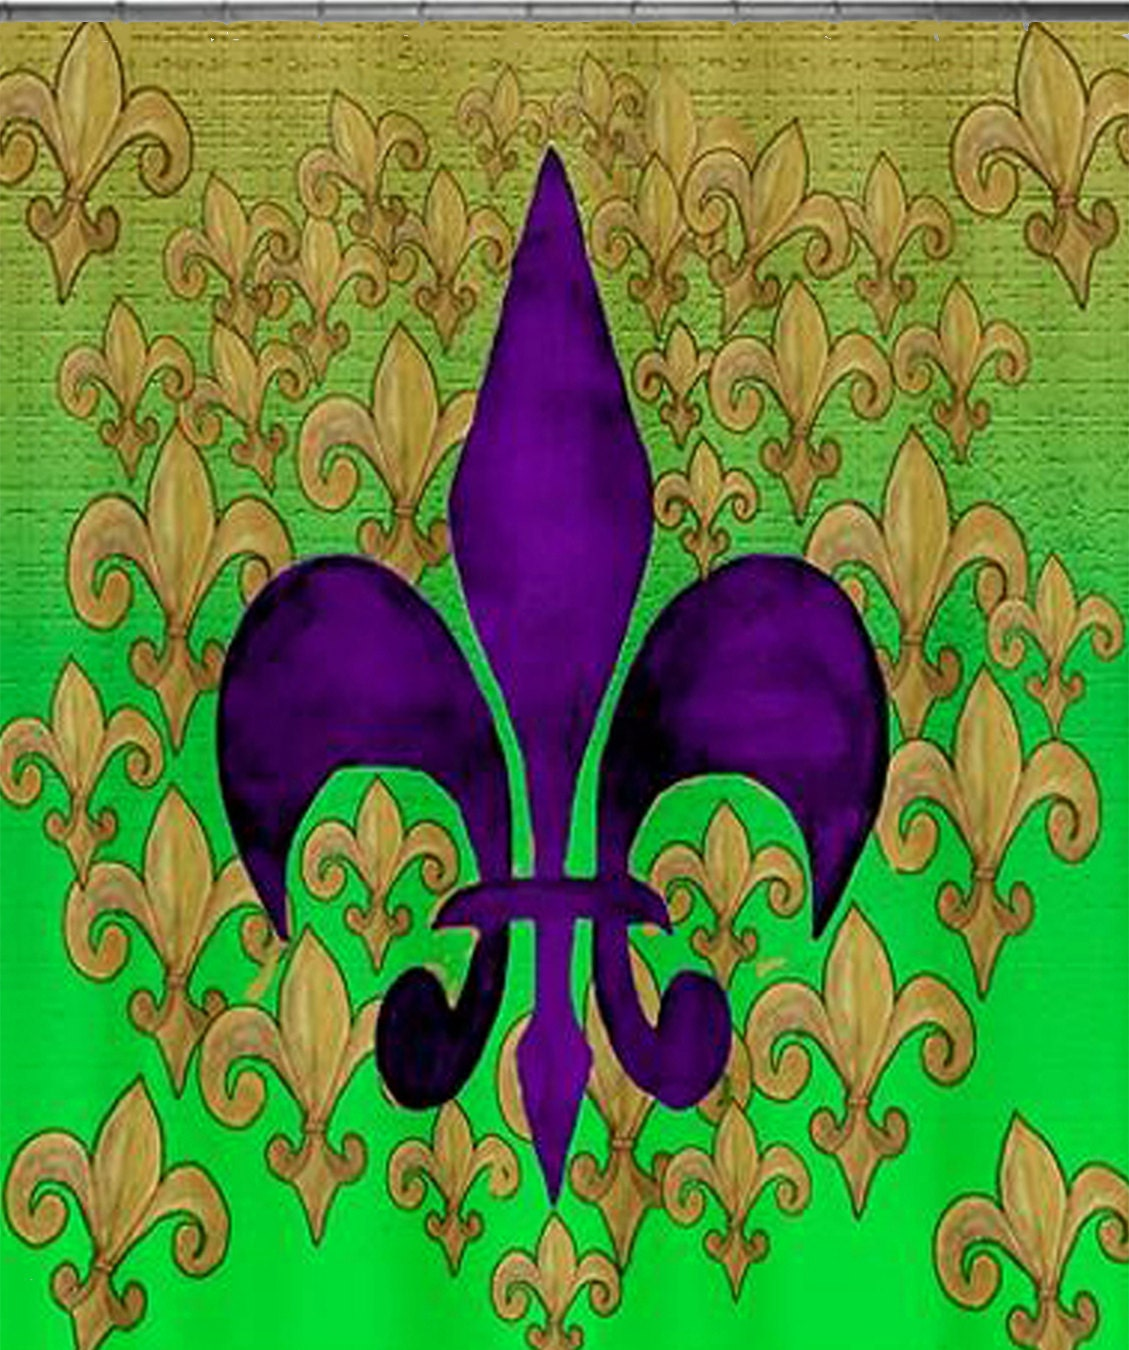 Purple fleur de lis art shower curtain by maremade on etsy - Fleur de lis shower curtains ...